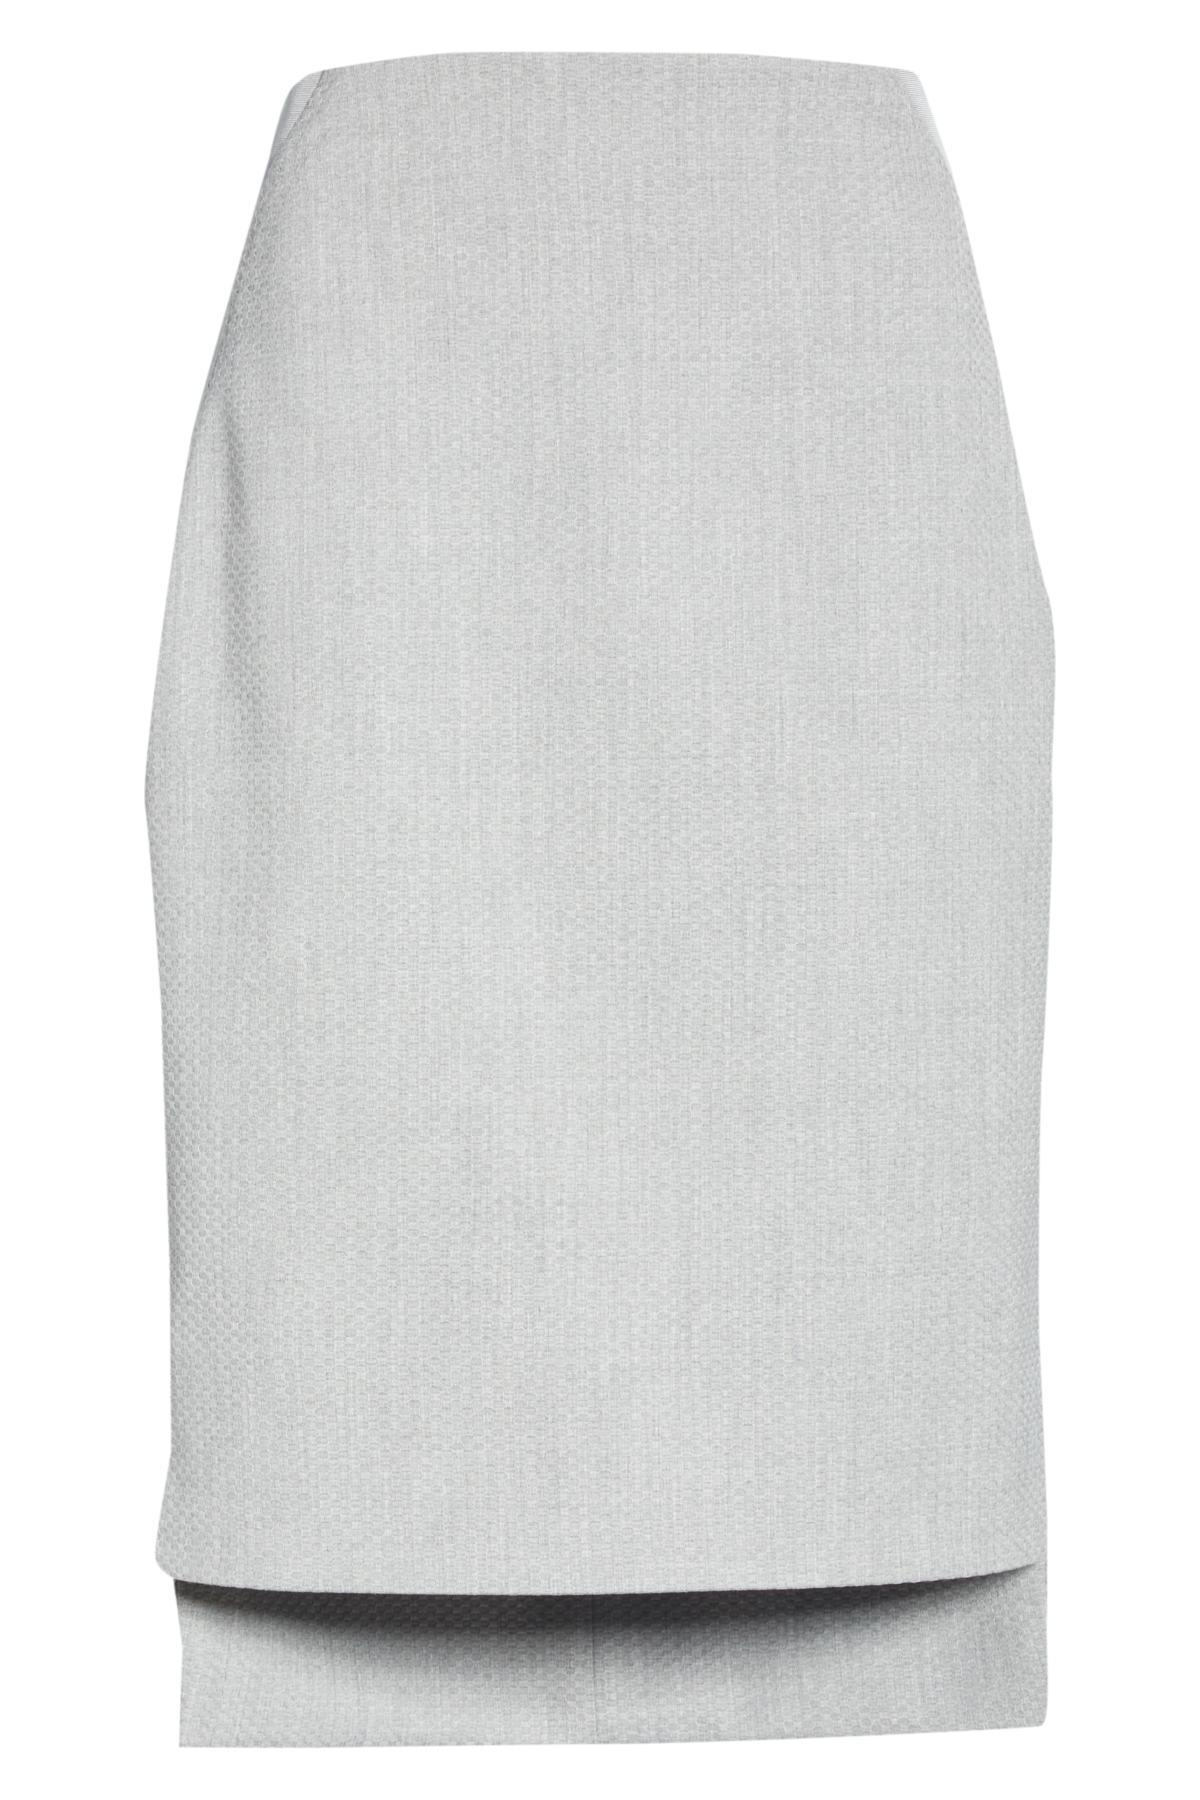 08f84c1c2f821 Lyst - Ted Baker Ted Working Title Daizis Step Hem Pencil Skirt in Gray